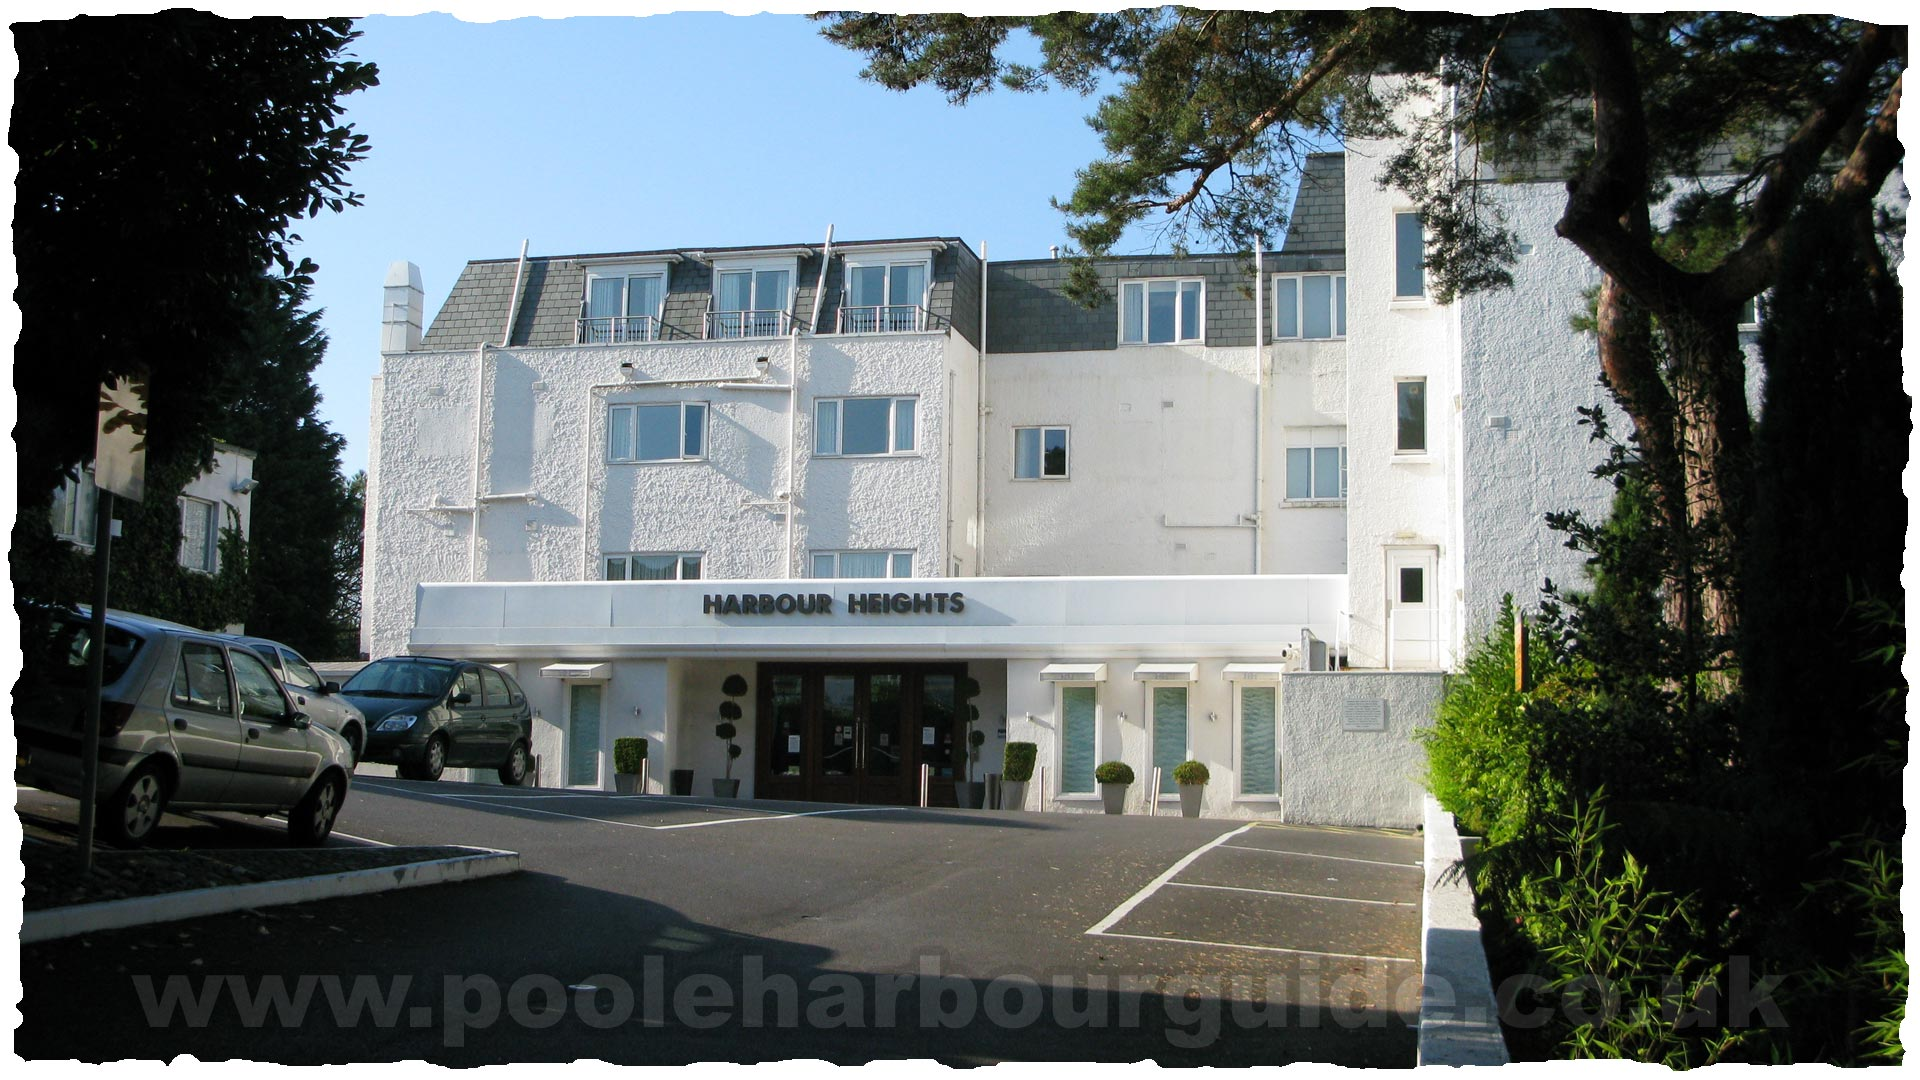 Harbour Heights Hotel Poole